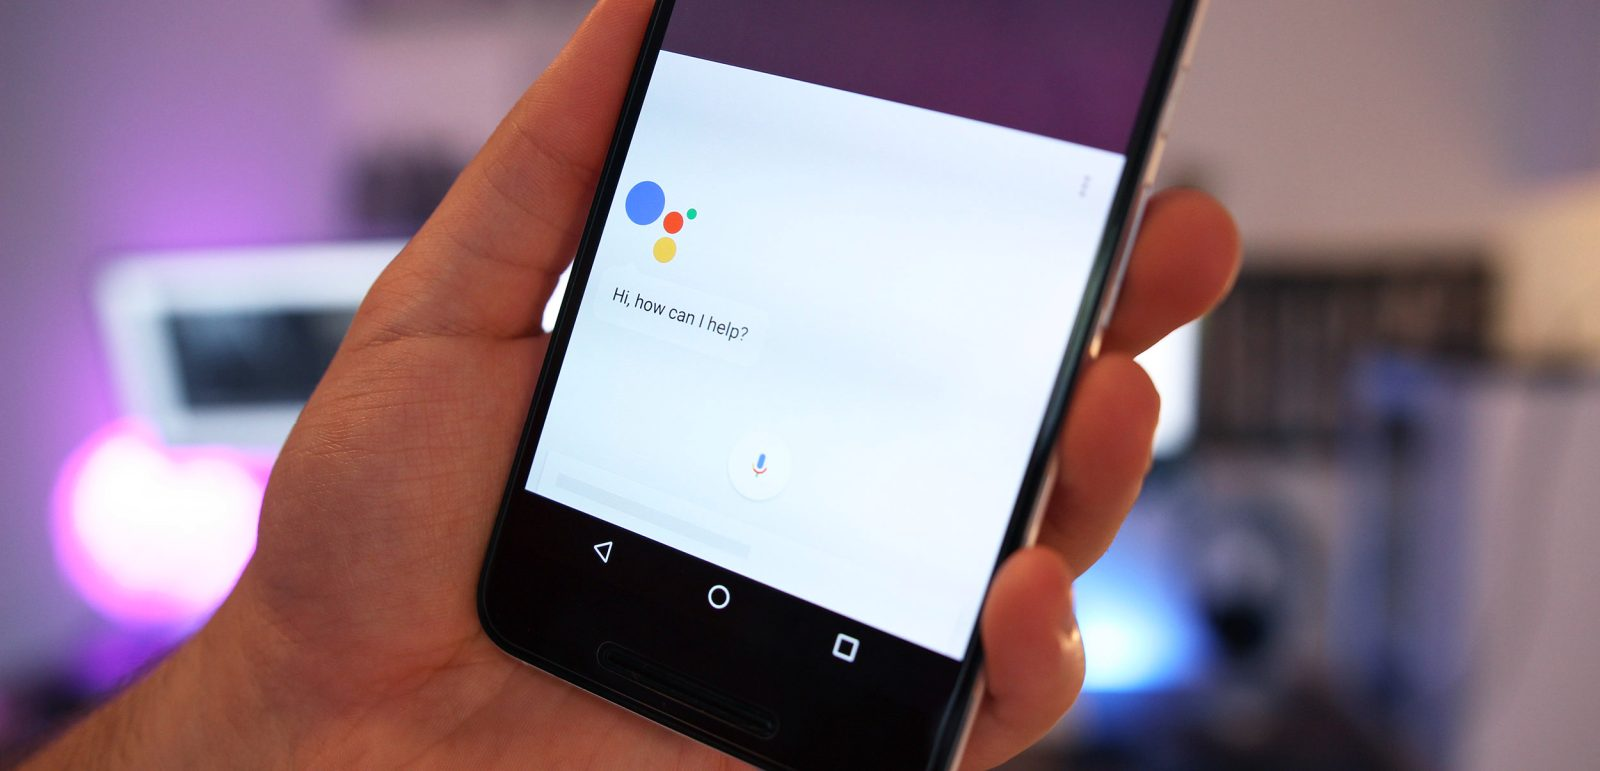 How to access Google Assistant by saying 'Hey Google' 1